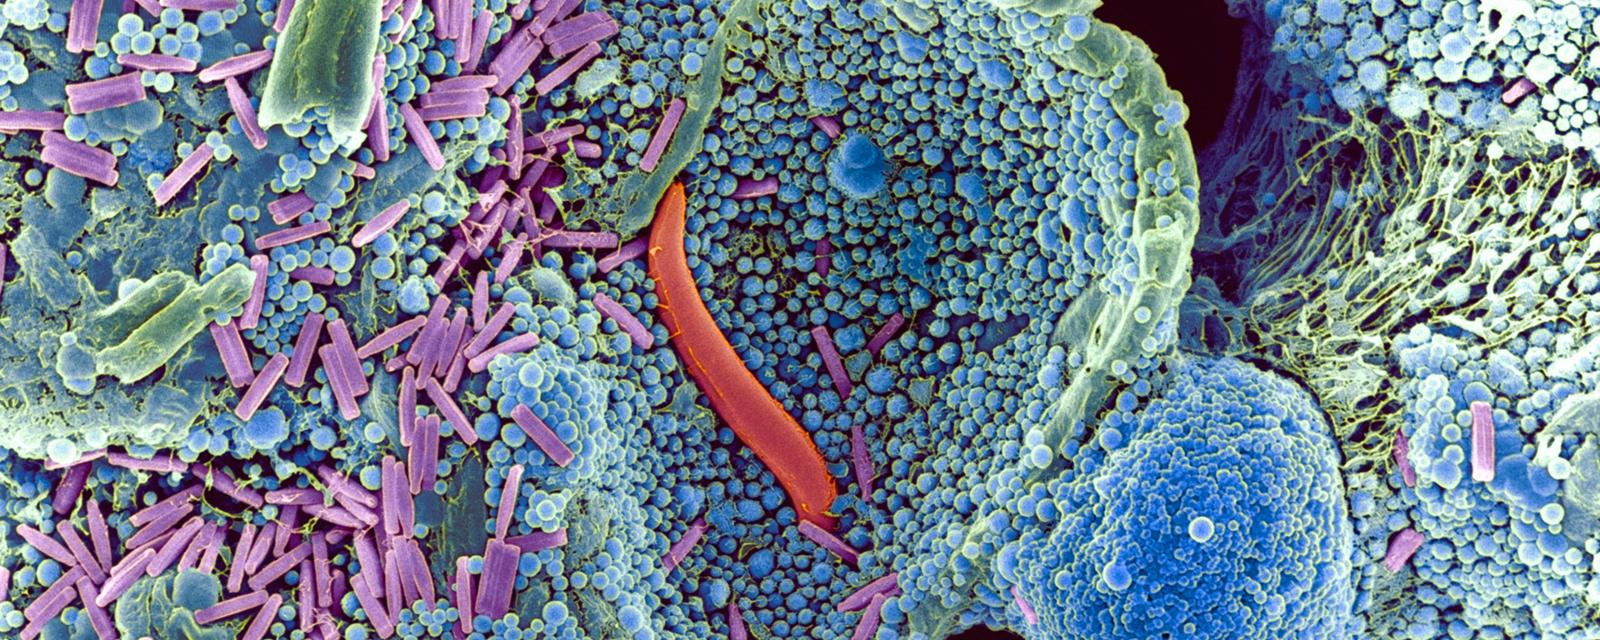 Electron Microscope View Of Soil